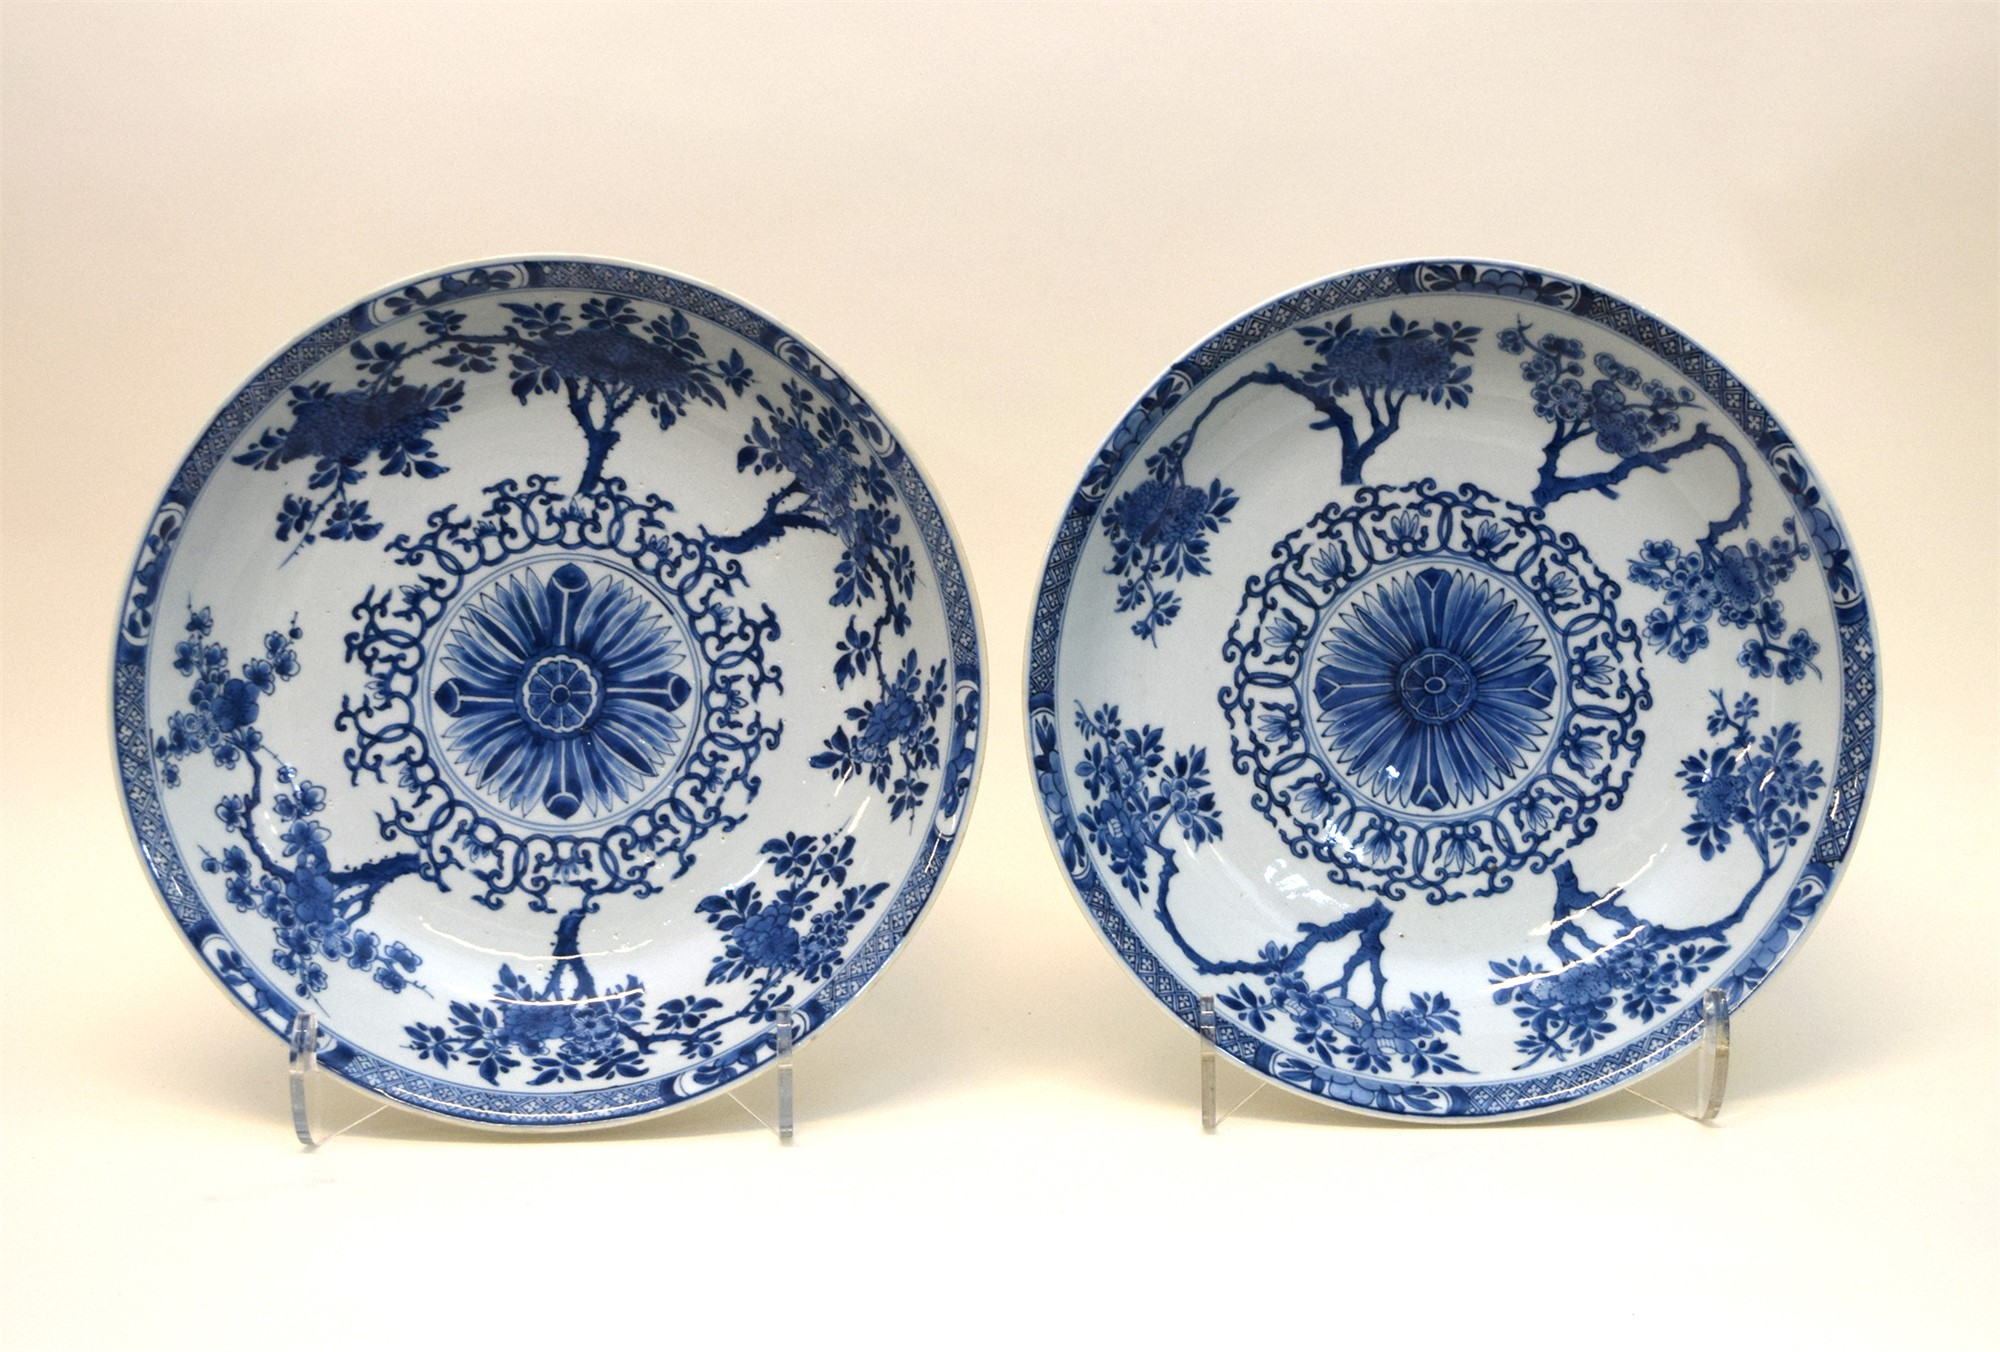 PAIR OF BLUE AND WHITE SAUCER DISHES